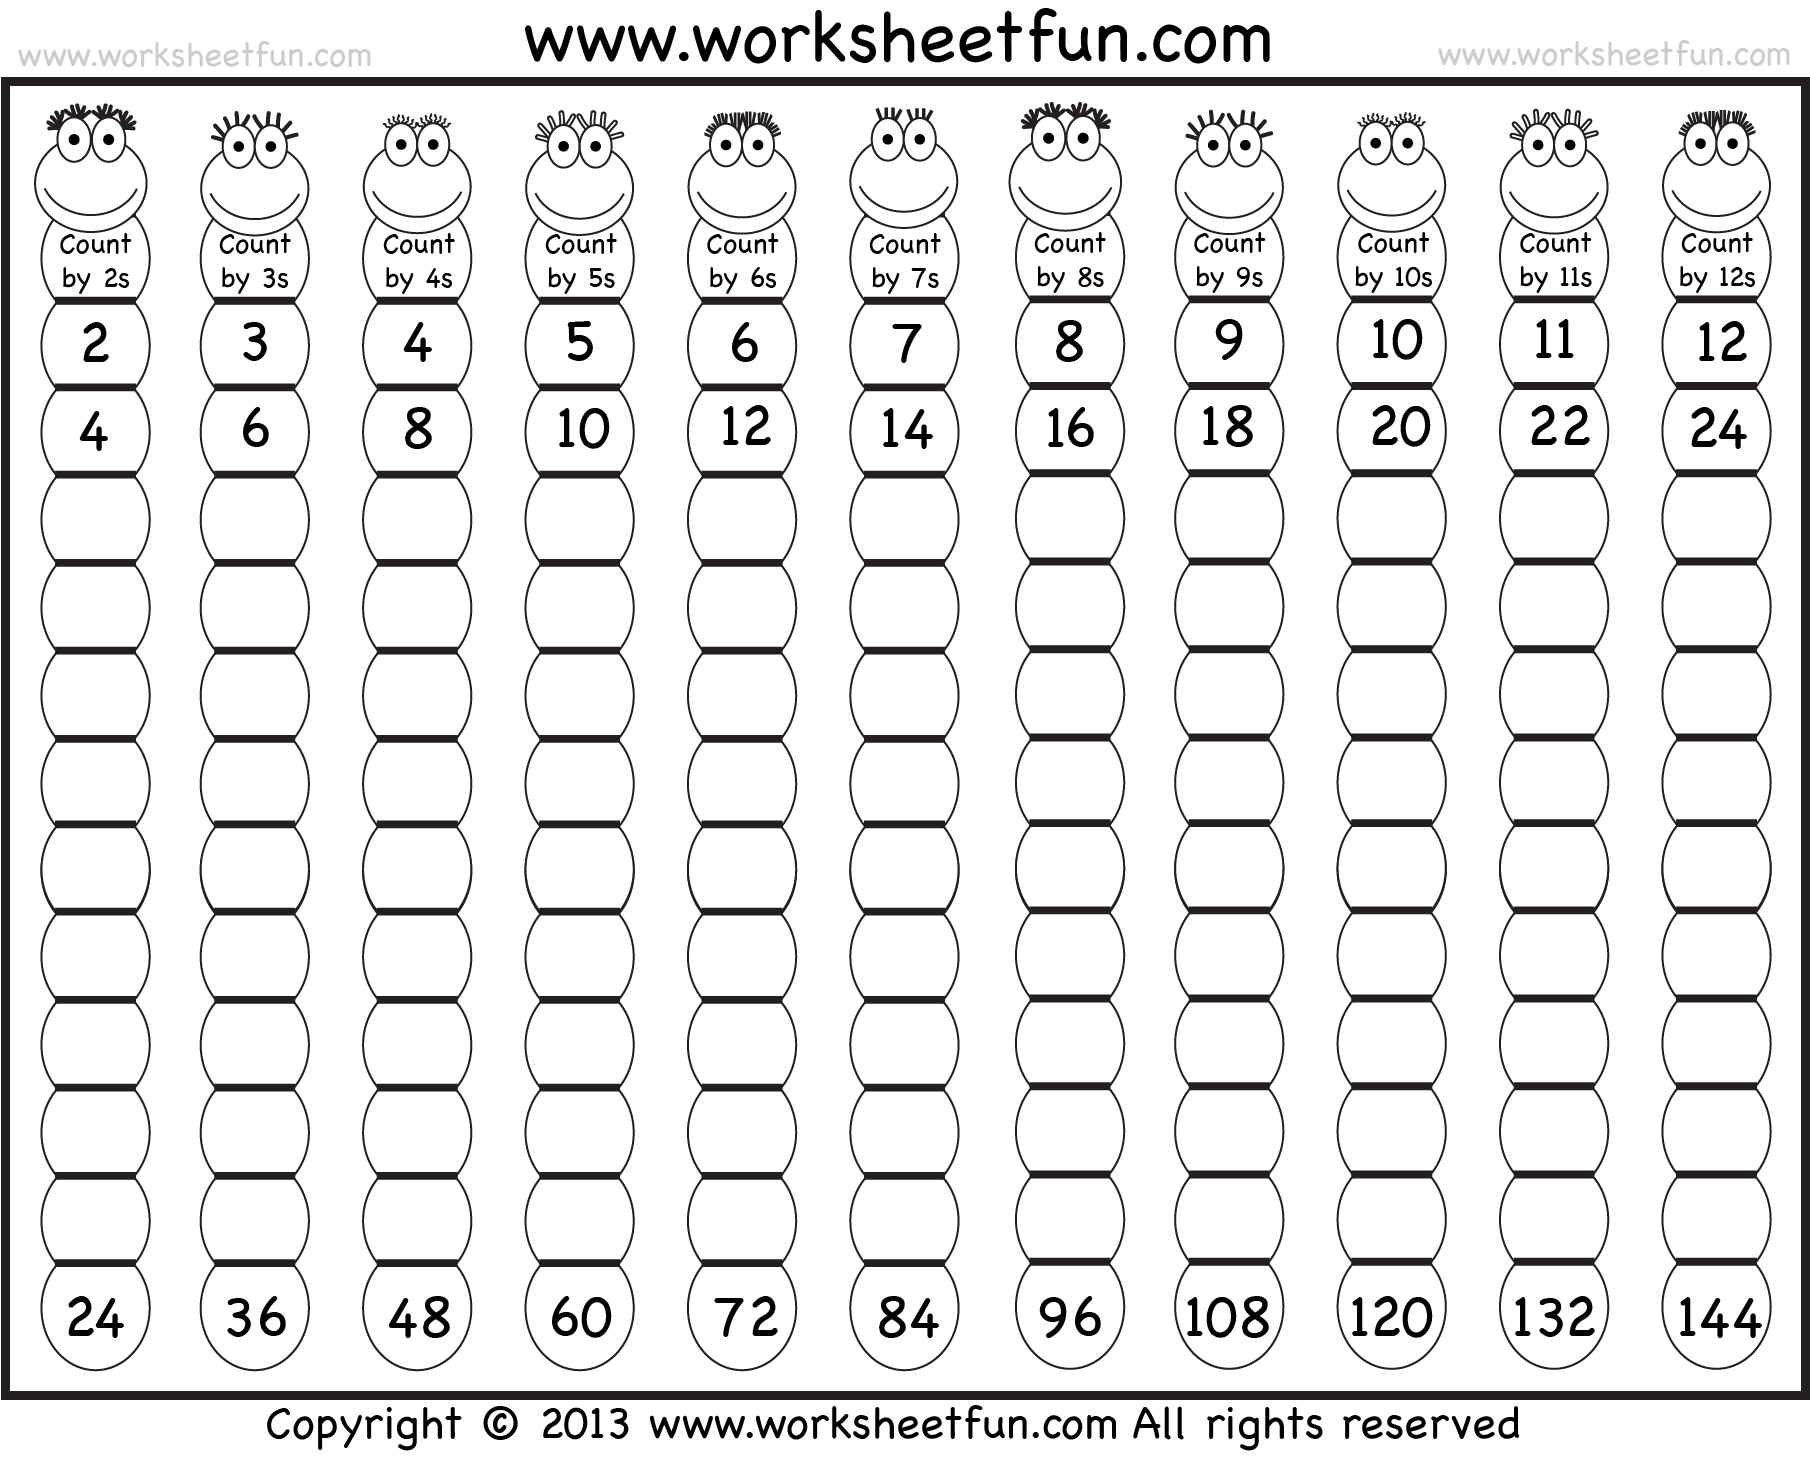 Worksheets Times Table Worksheets 1-12 times table 2 12 worksheets 1 3 4 5 6 7 8 9 10 11 worksheet here skip counting